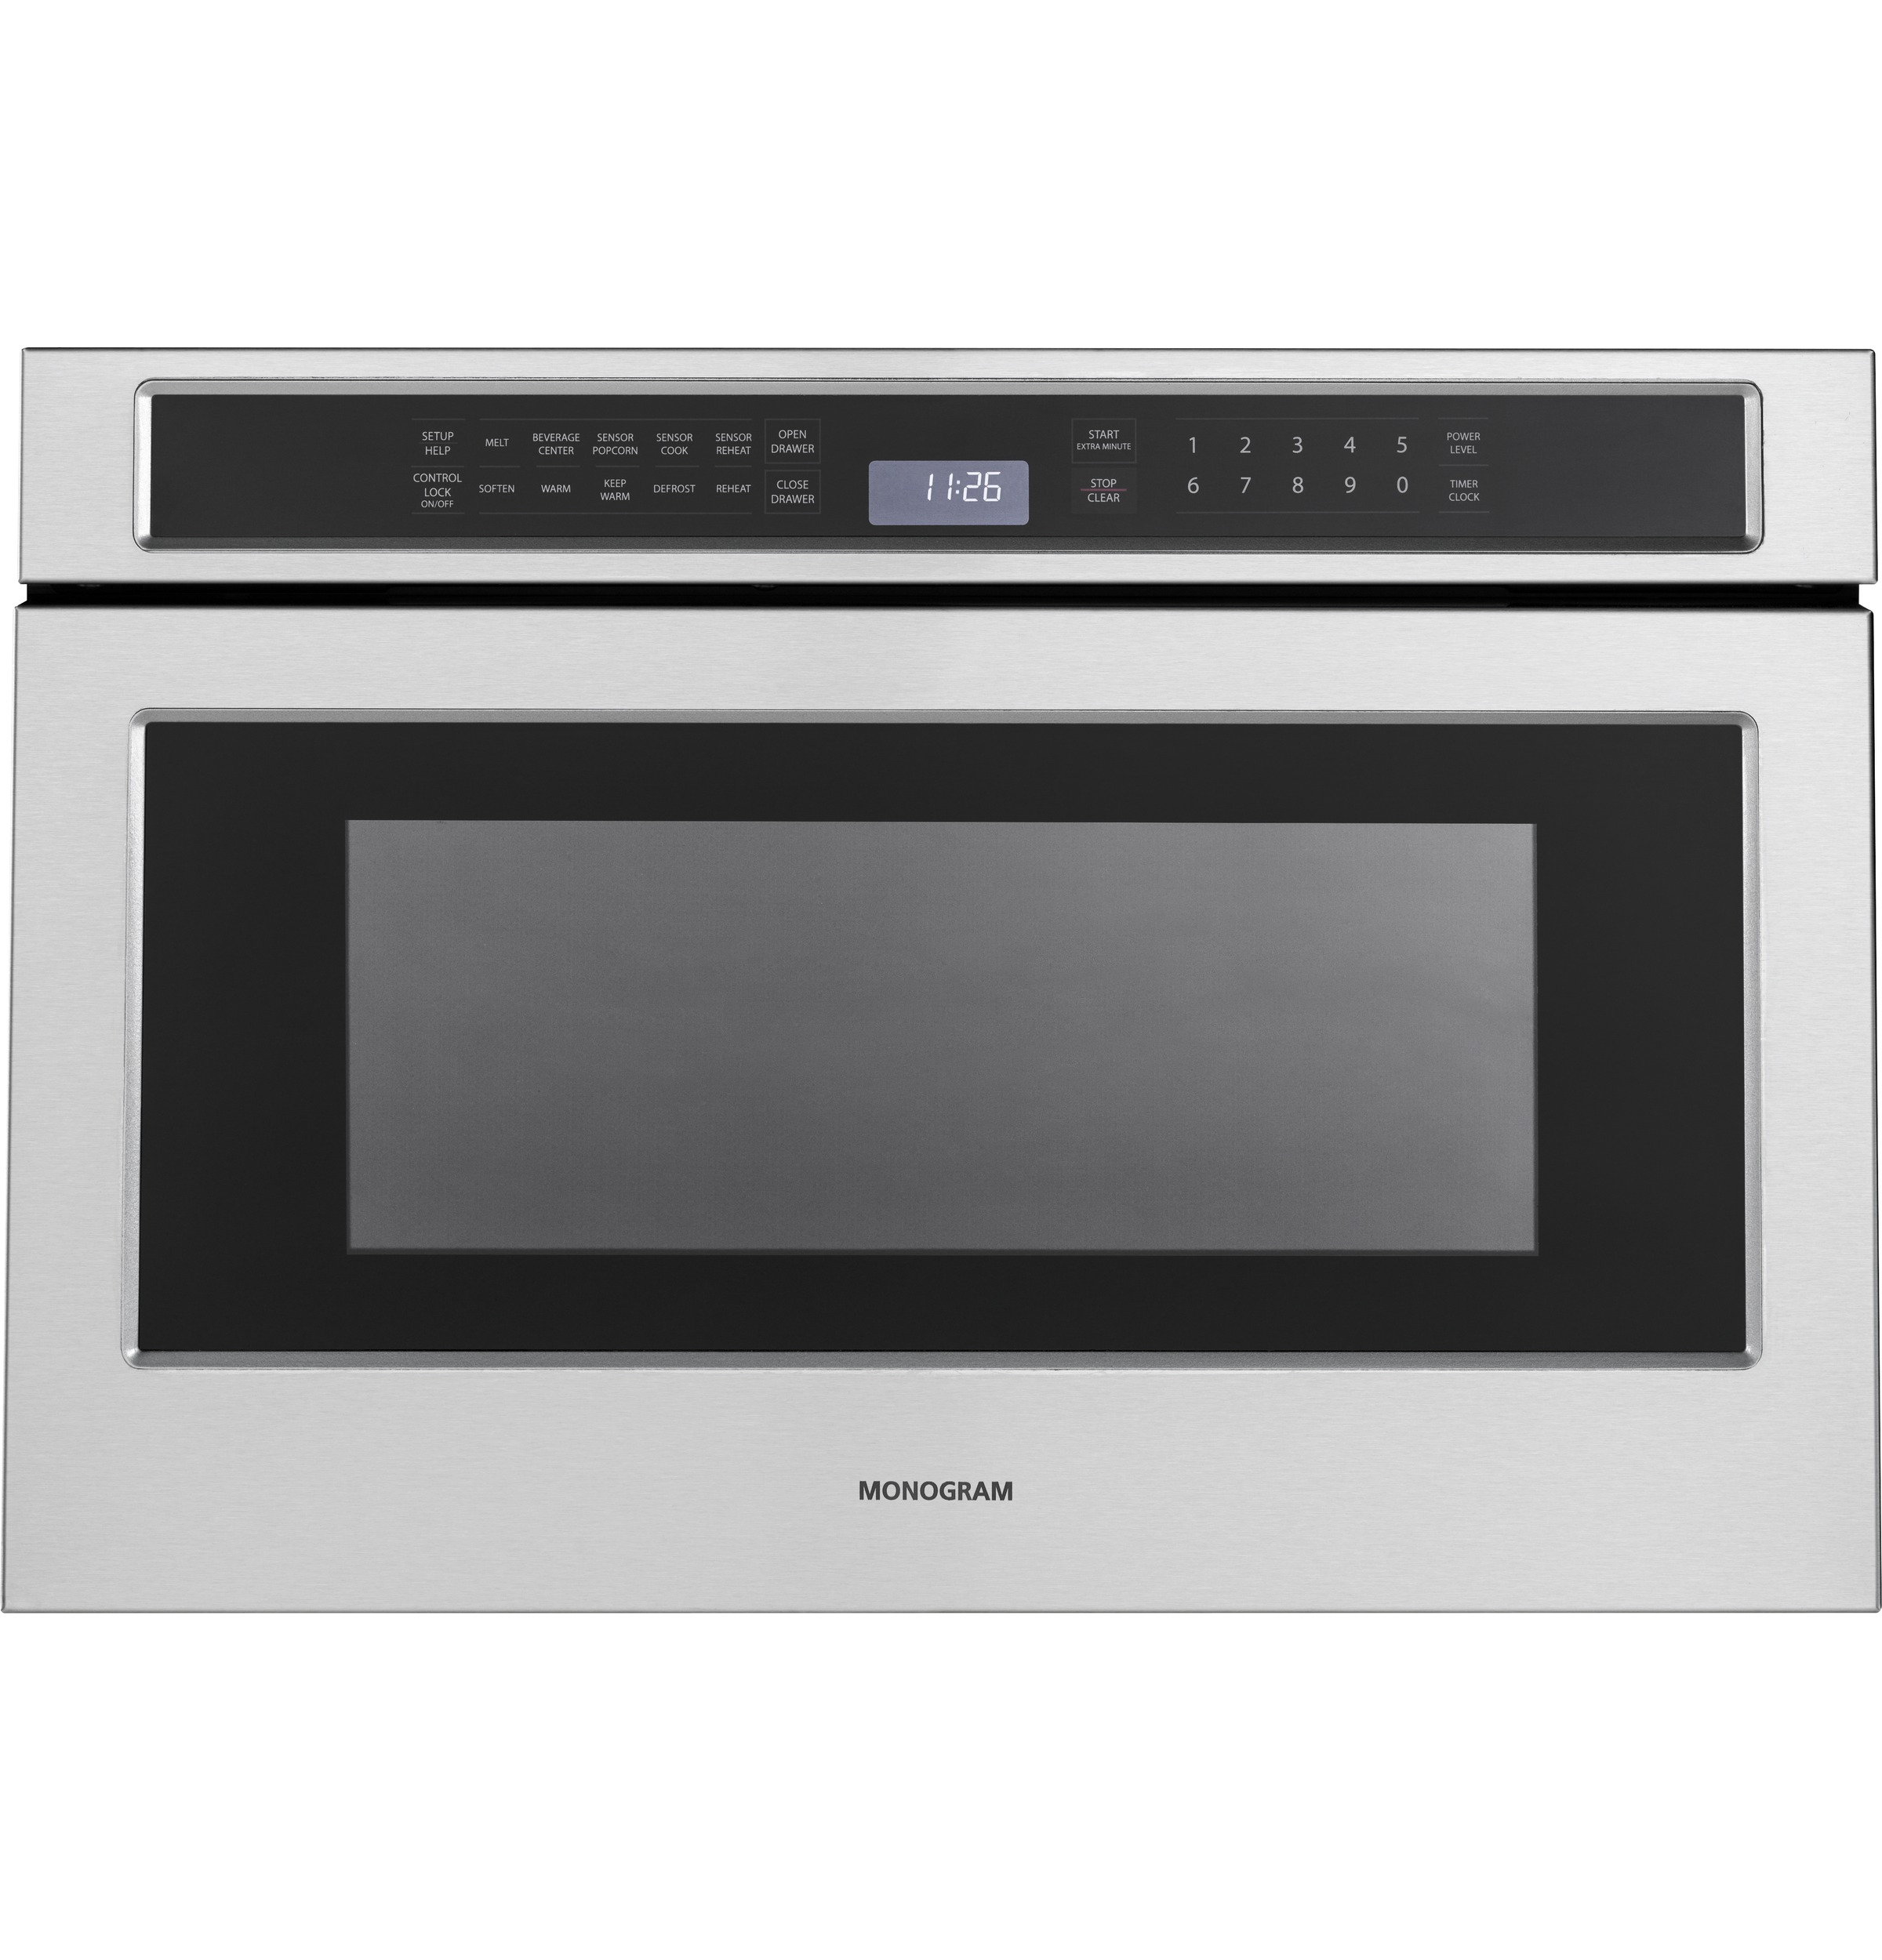 Monogram Monogram 1.2 Cu. Ft. Drawer Microwave